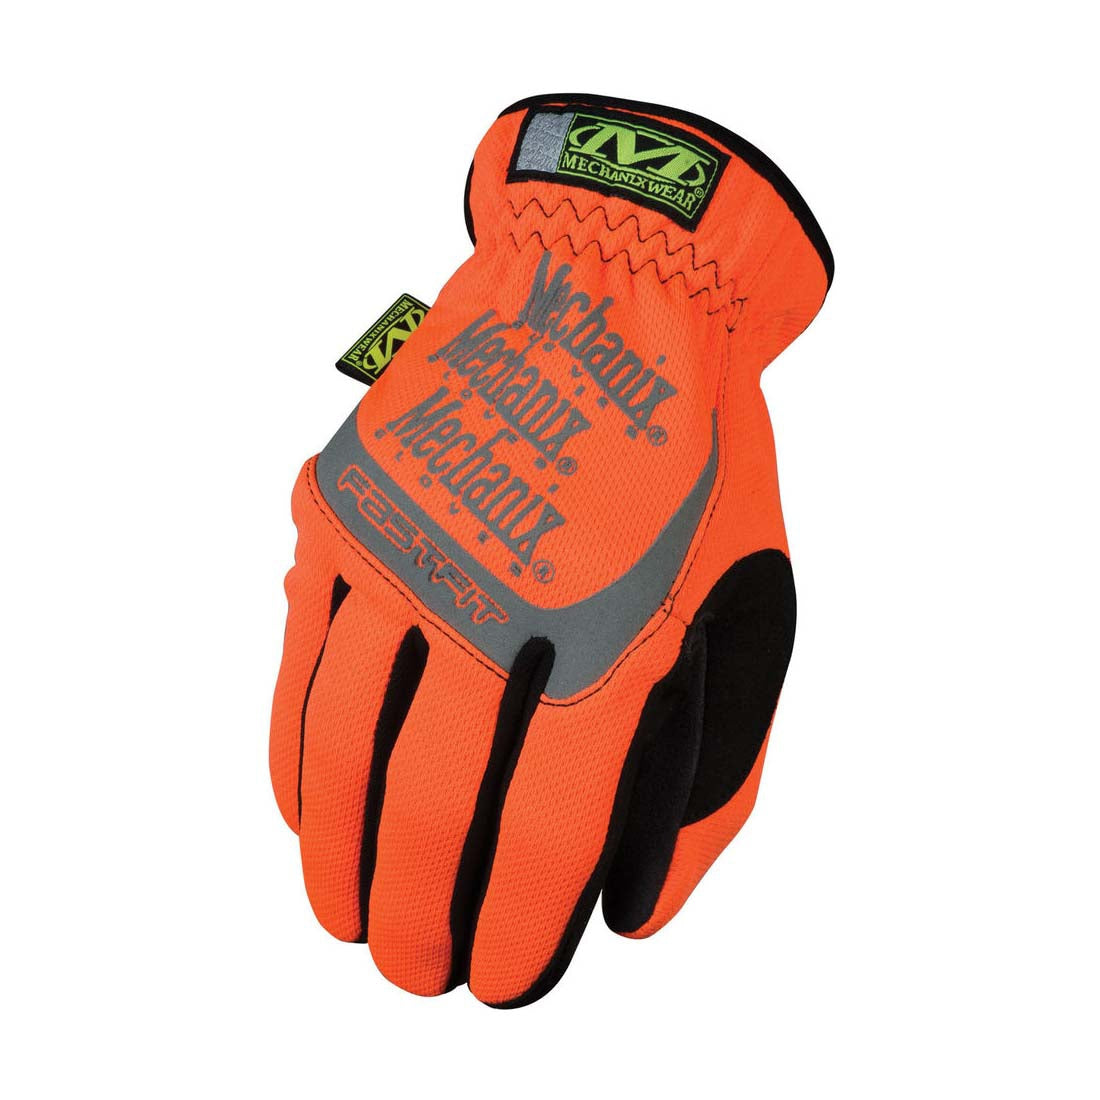 Mechanix Wear SFF-99-008 Hi-Viz Orange FastFit  Safety Gloves - Small